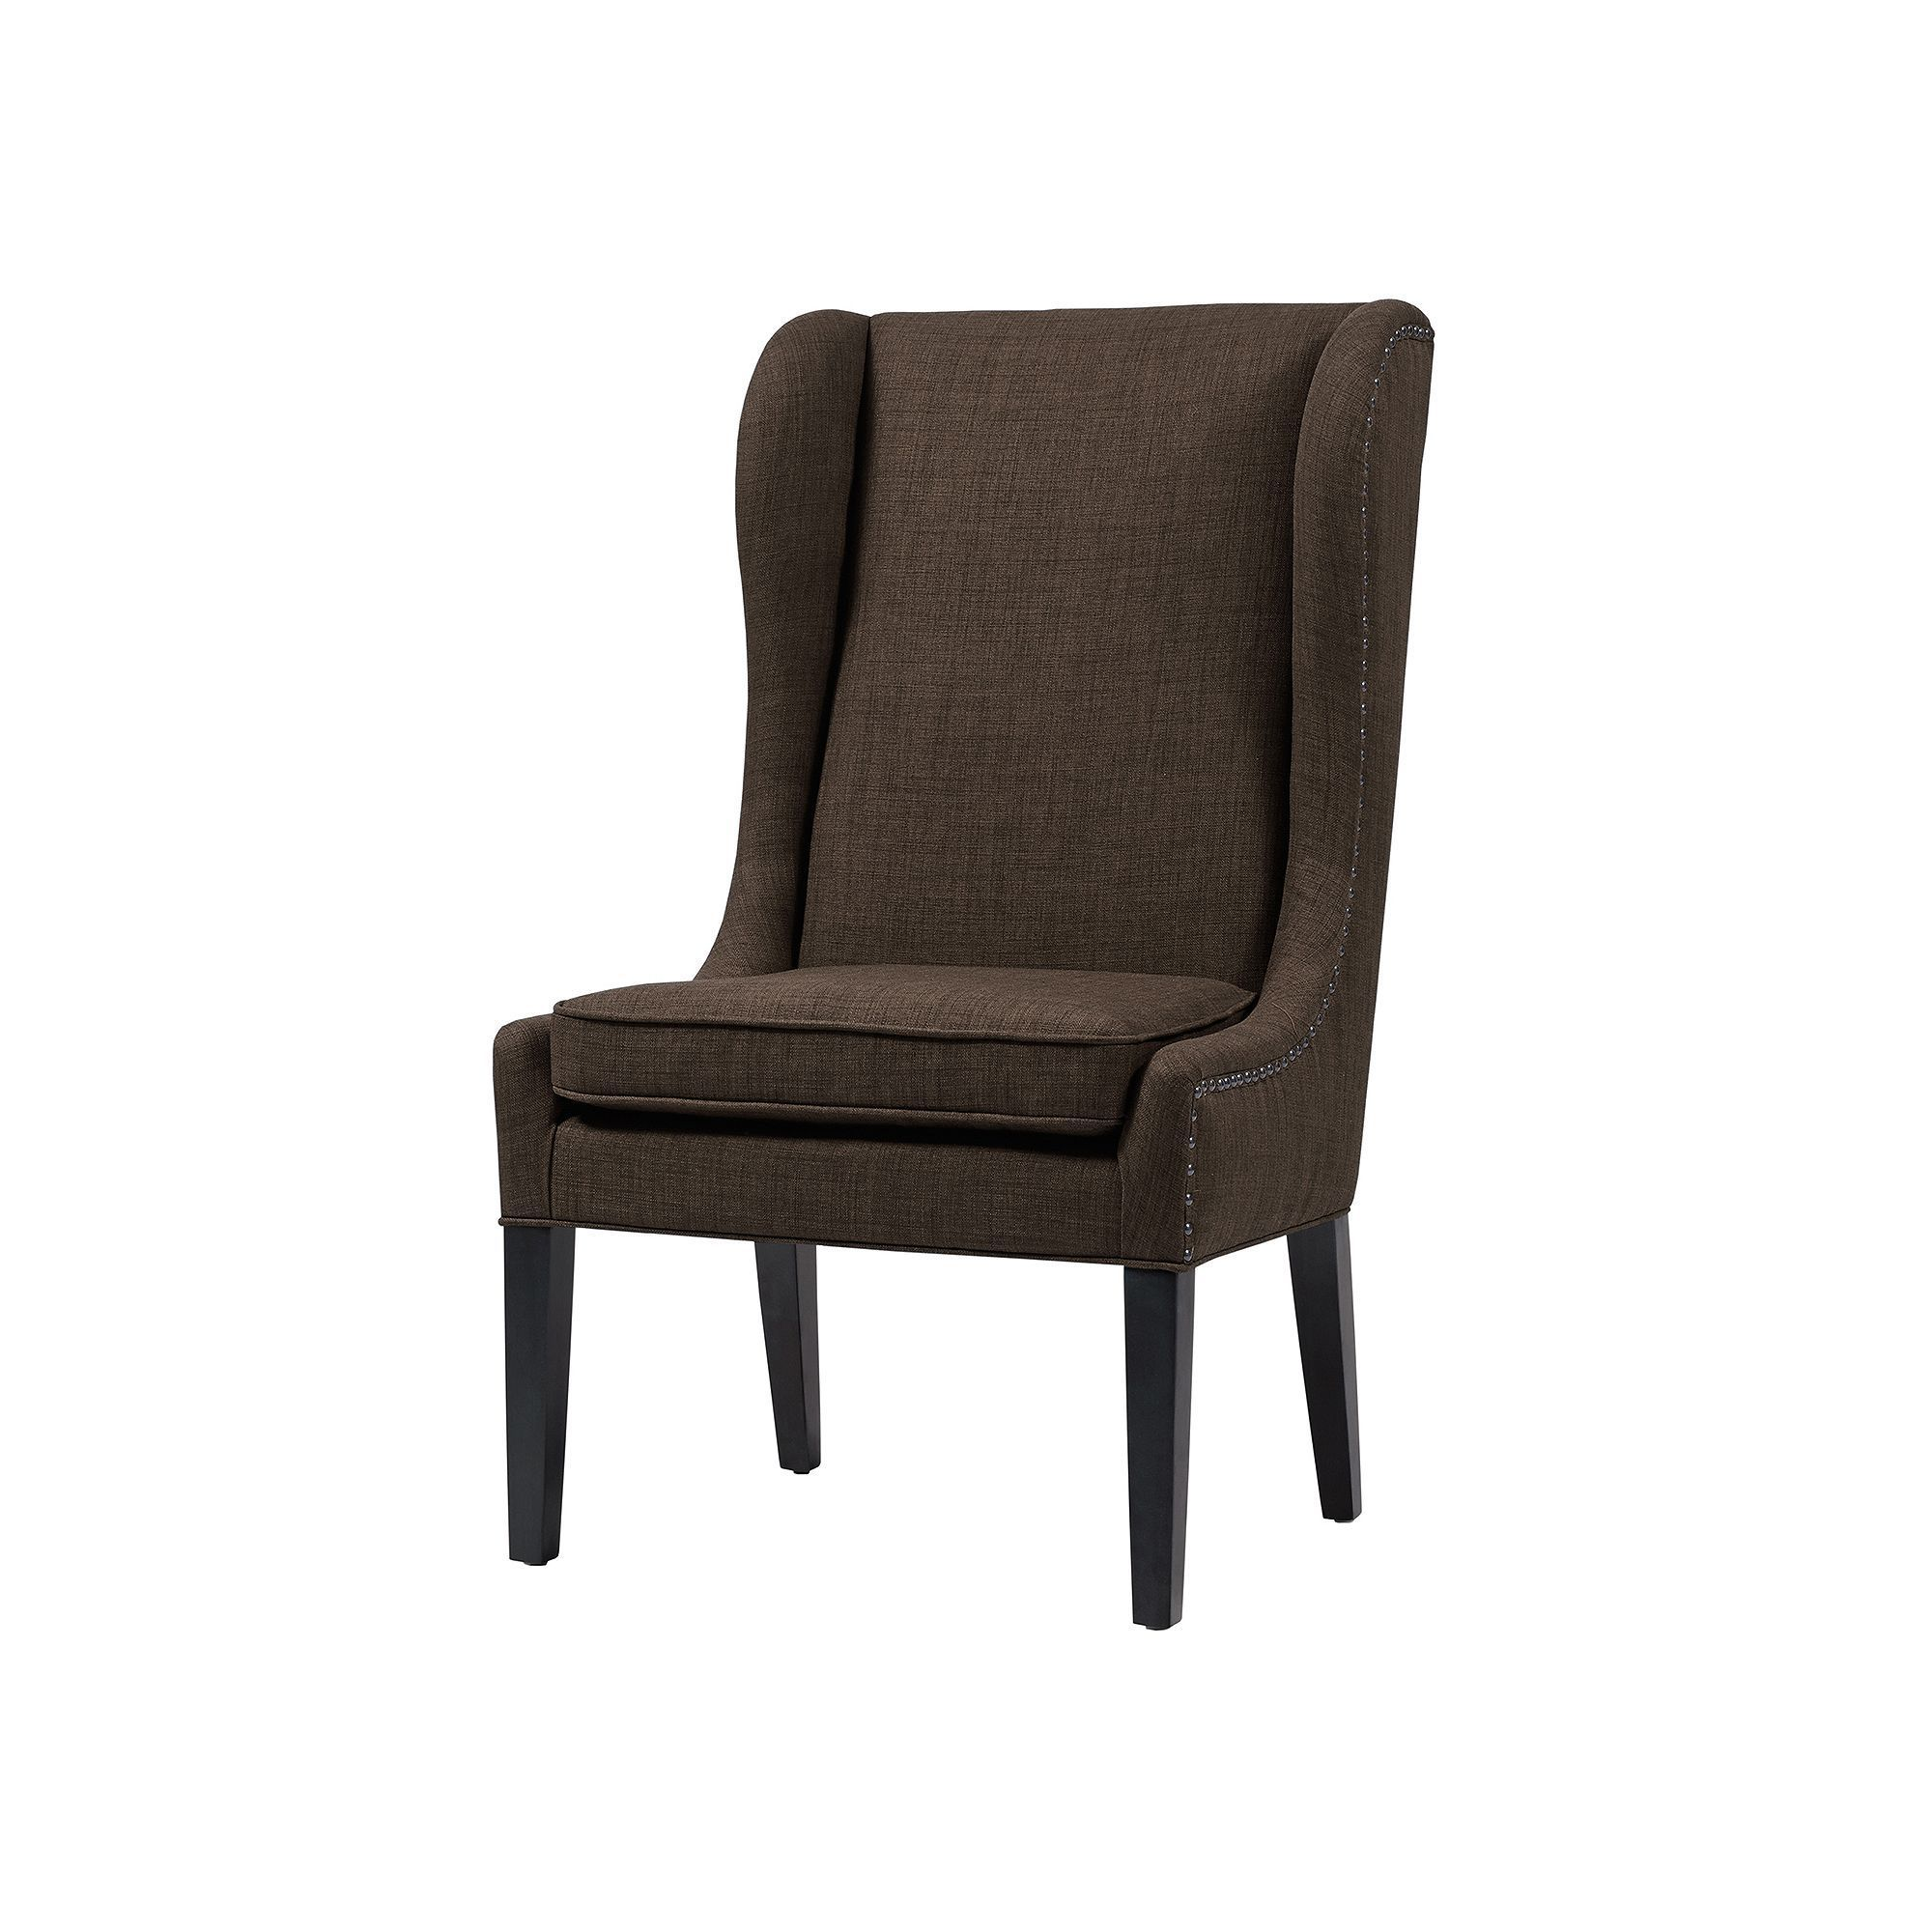 Madison Park Sydney Dining Chair, Grey (Charcoal